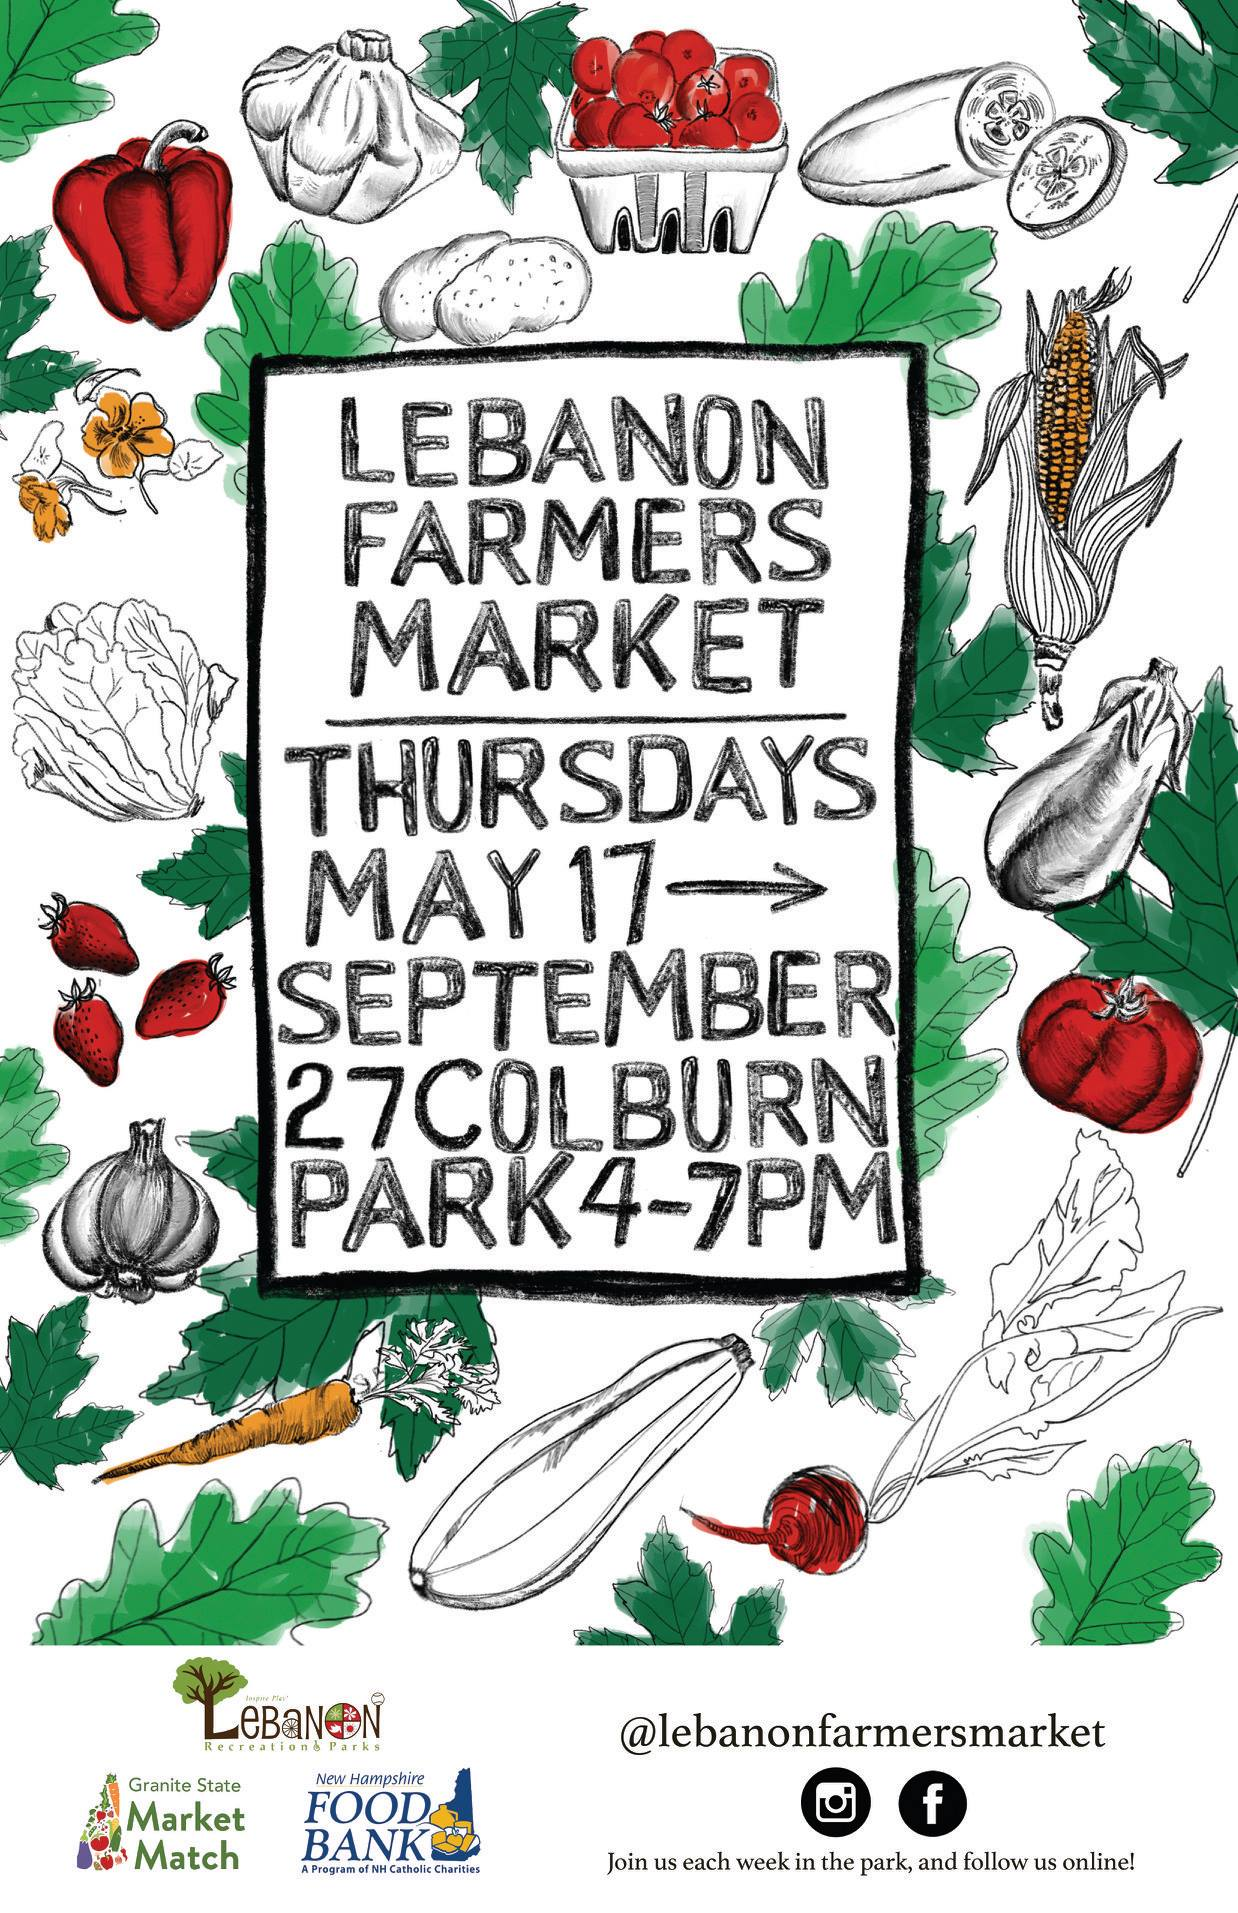 Lebanon Farmers' Market 2018 Poster with veggies drawn, Thursdays May 17-September 27 Colburn Par